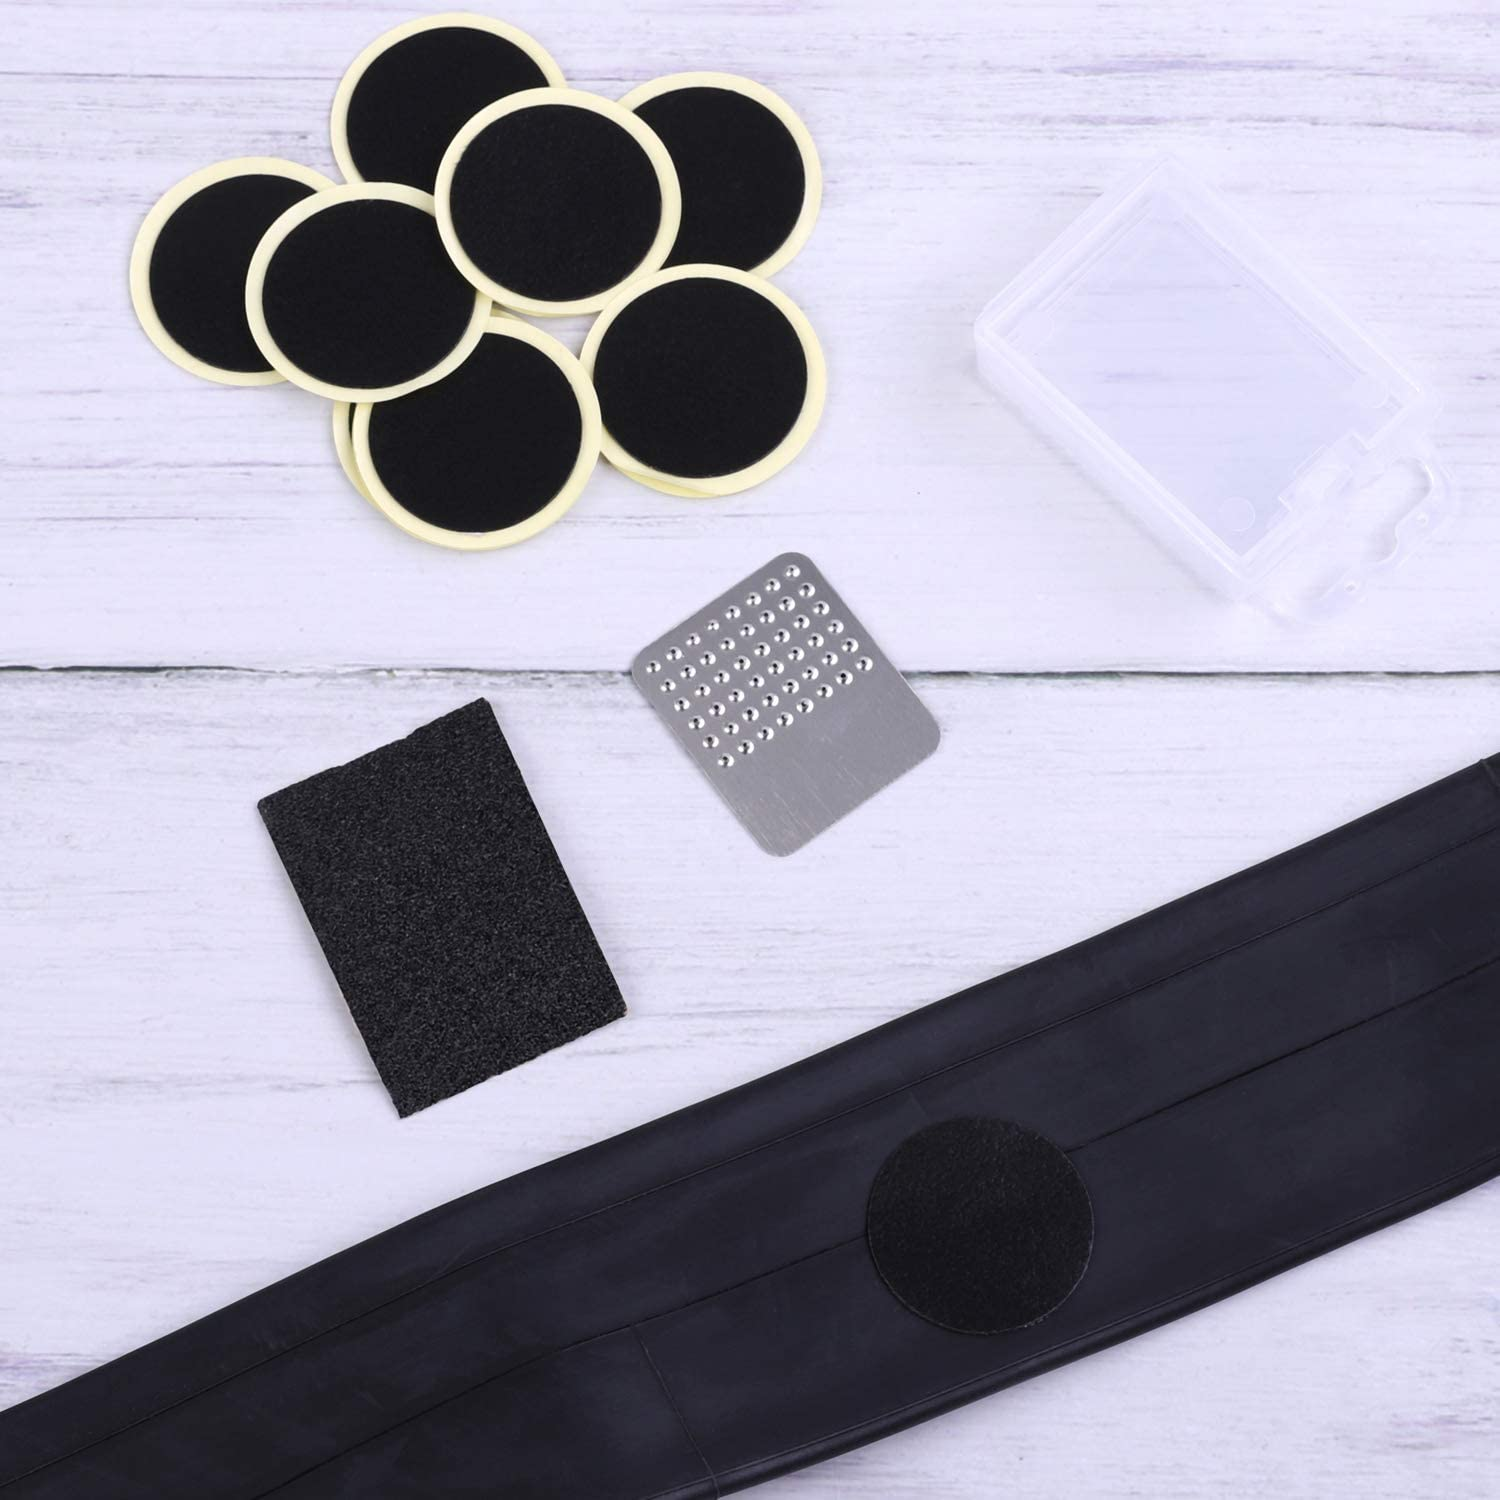 Ruisita 12 Pieces Self Adhesive Bike Puncture Repair Patches Repair Kits Includes Bicycle Tube Patches Polished Metal Sand Paper with Portable Case for Bike Inner Tube Repairing